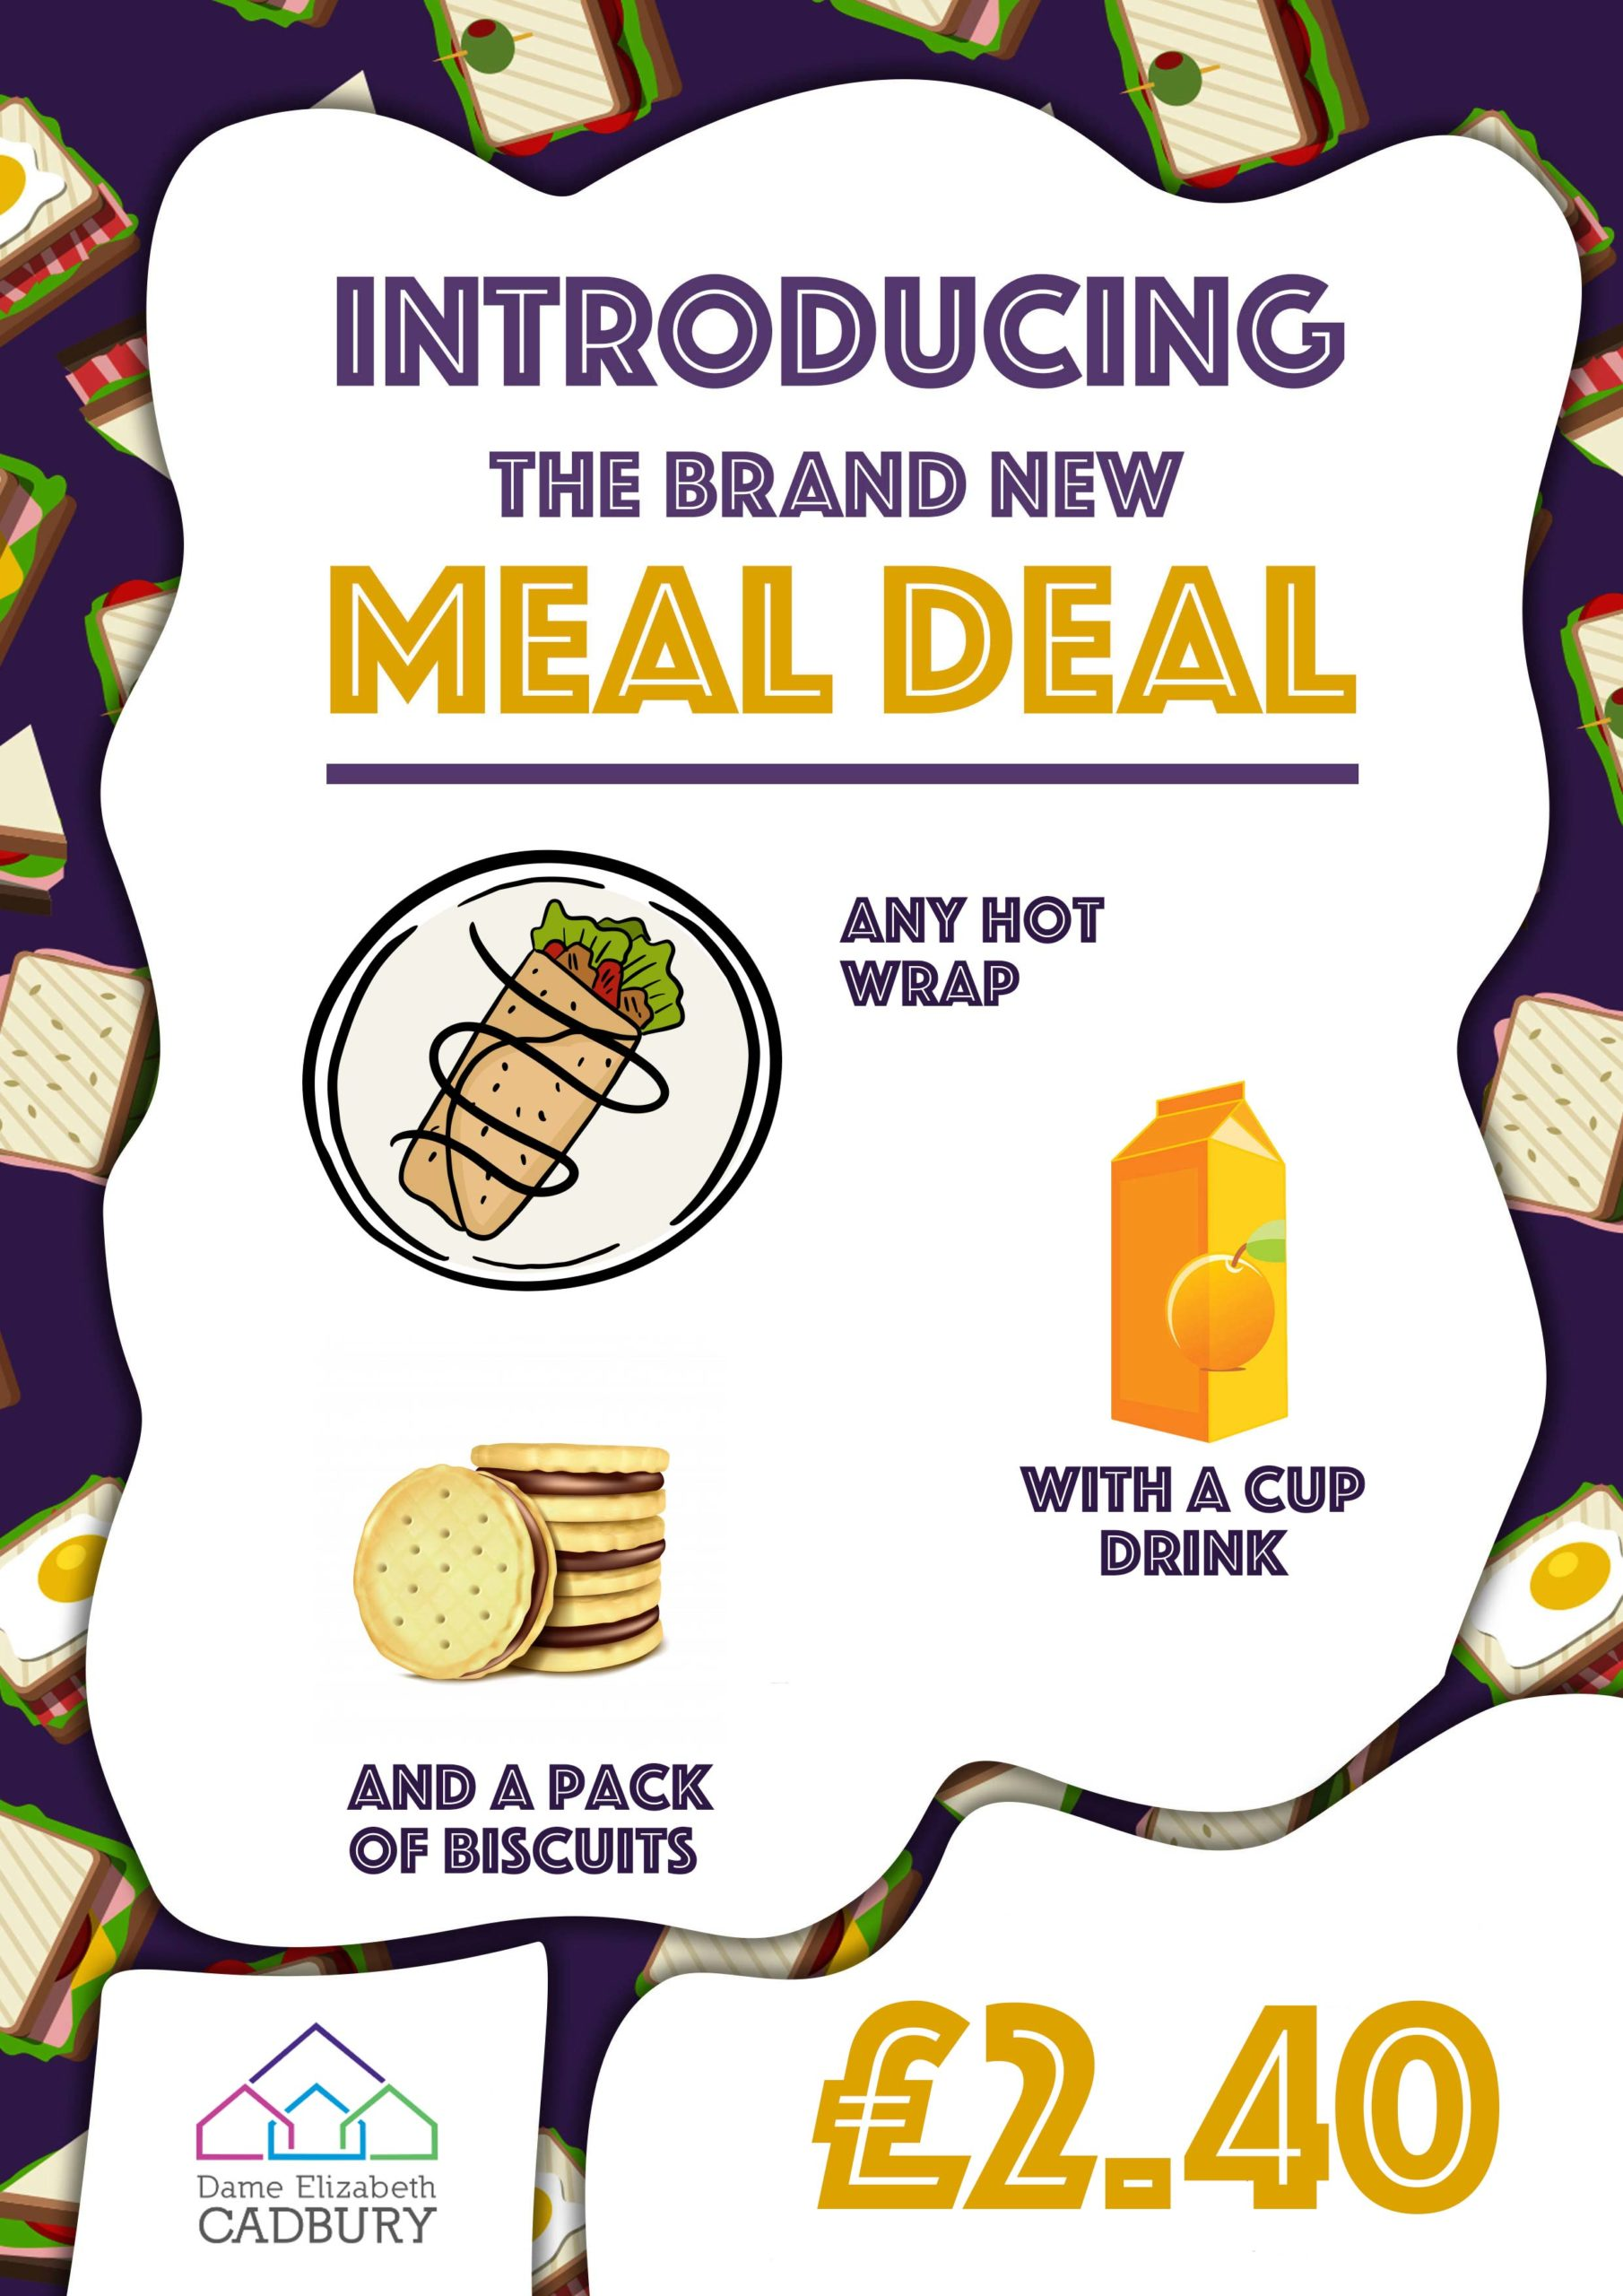 Wrap meal deal